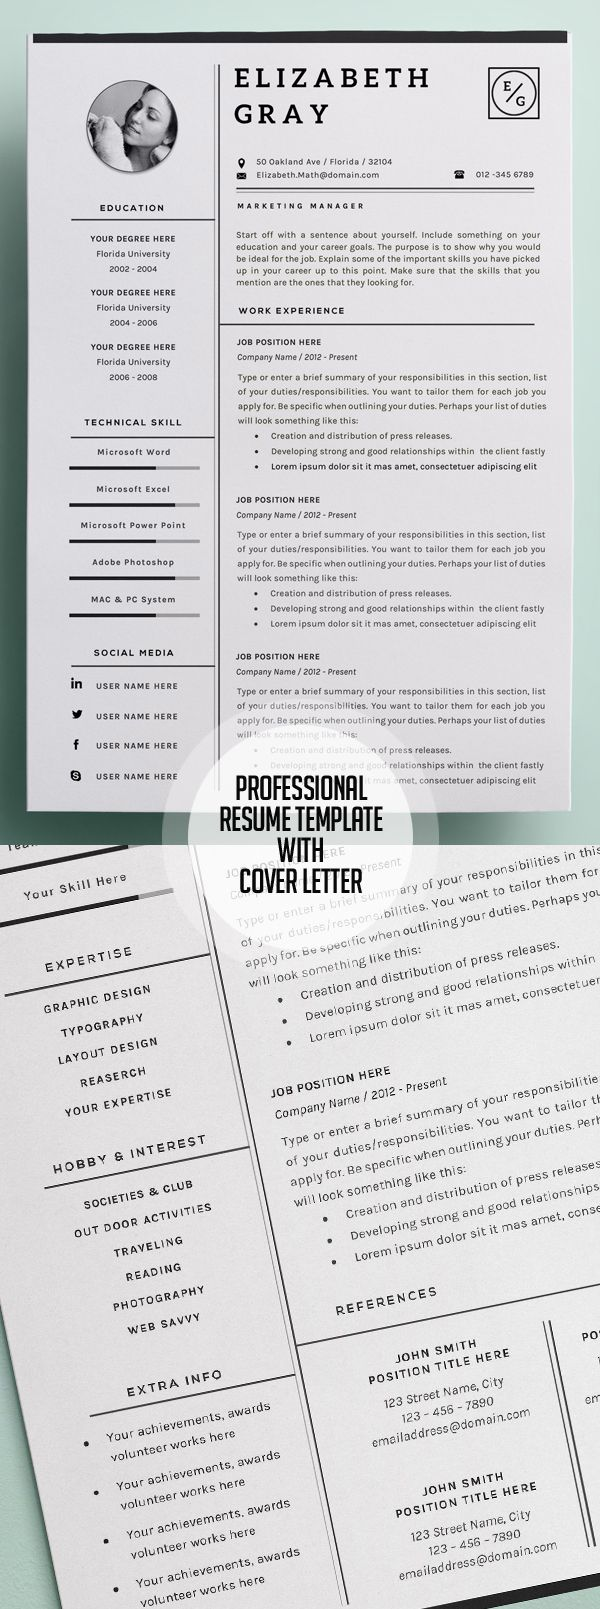 Opposenewapstandardsus  Personable  Resume Ideas On Pinterest  Resume Resume Templates And  With Heavenly Professional And Modern Resume Template With Page Cover Cvtemplate With Comely Strong Resumes Also Skill To Put On Resume In Addition Risk Manager Resume And Maintenance Tech Resume As Well As Fill In Resume Template Additionally How To Say Good Communication Skills On Resume From Pinterestcom With Opposenewapstandardsus  Heavenly  Resume Ideas On Pinterest  Resume Resume Templates And  With Comely Professional And Modern Resume Template With Page Cover Cvtemplate And Personable Strong Resumes Also Skill To Put On Resume In Addition Risk Manager Resume From Pinterestcom